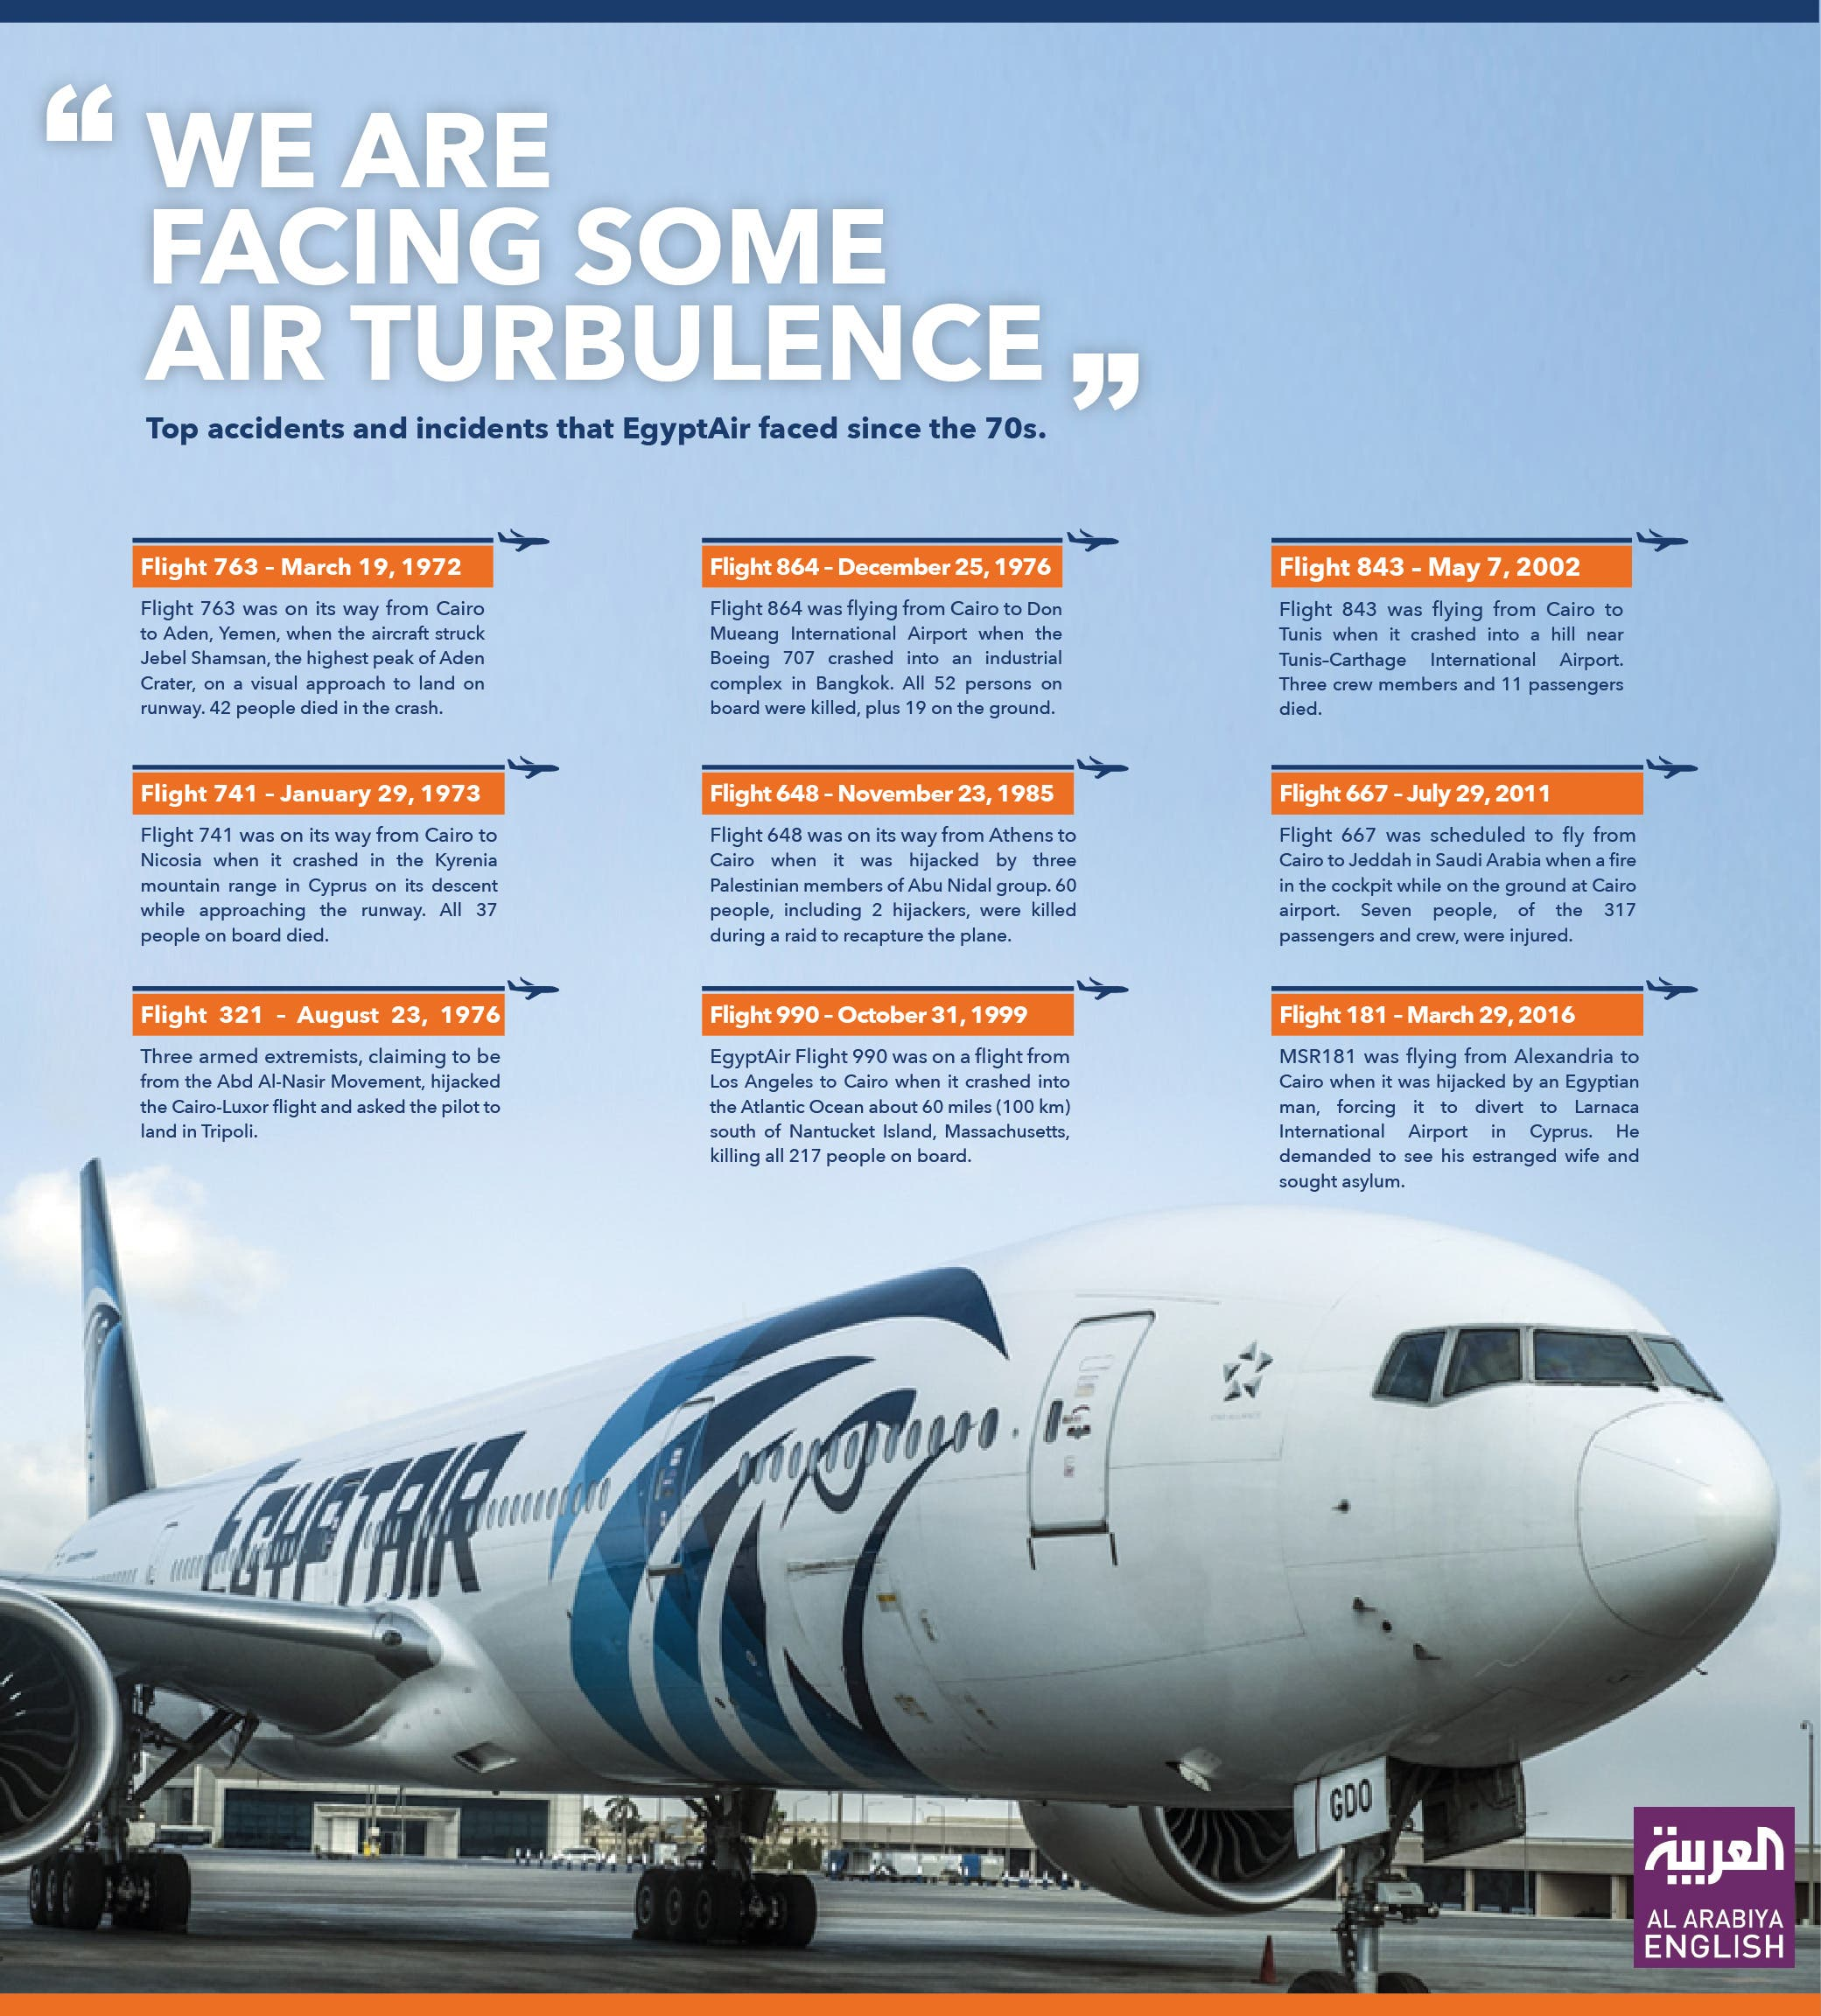 Infographic: Turbulent EgyptAir history